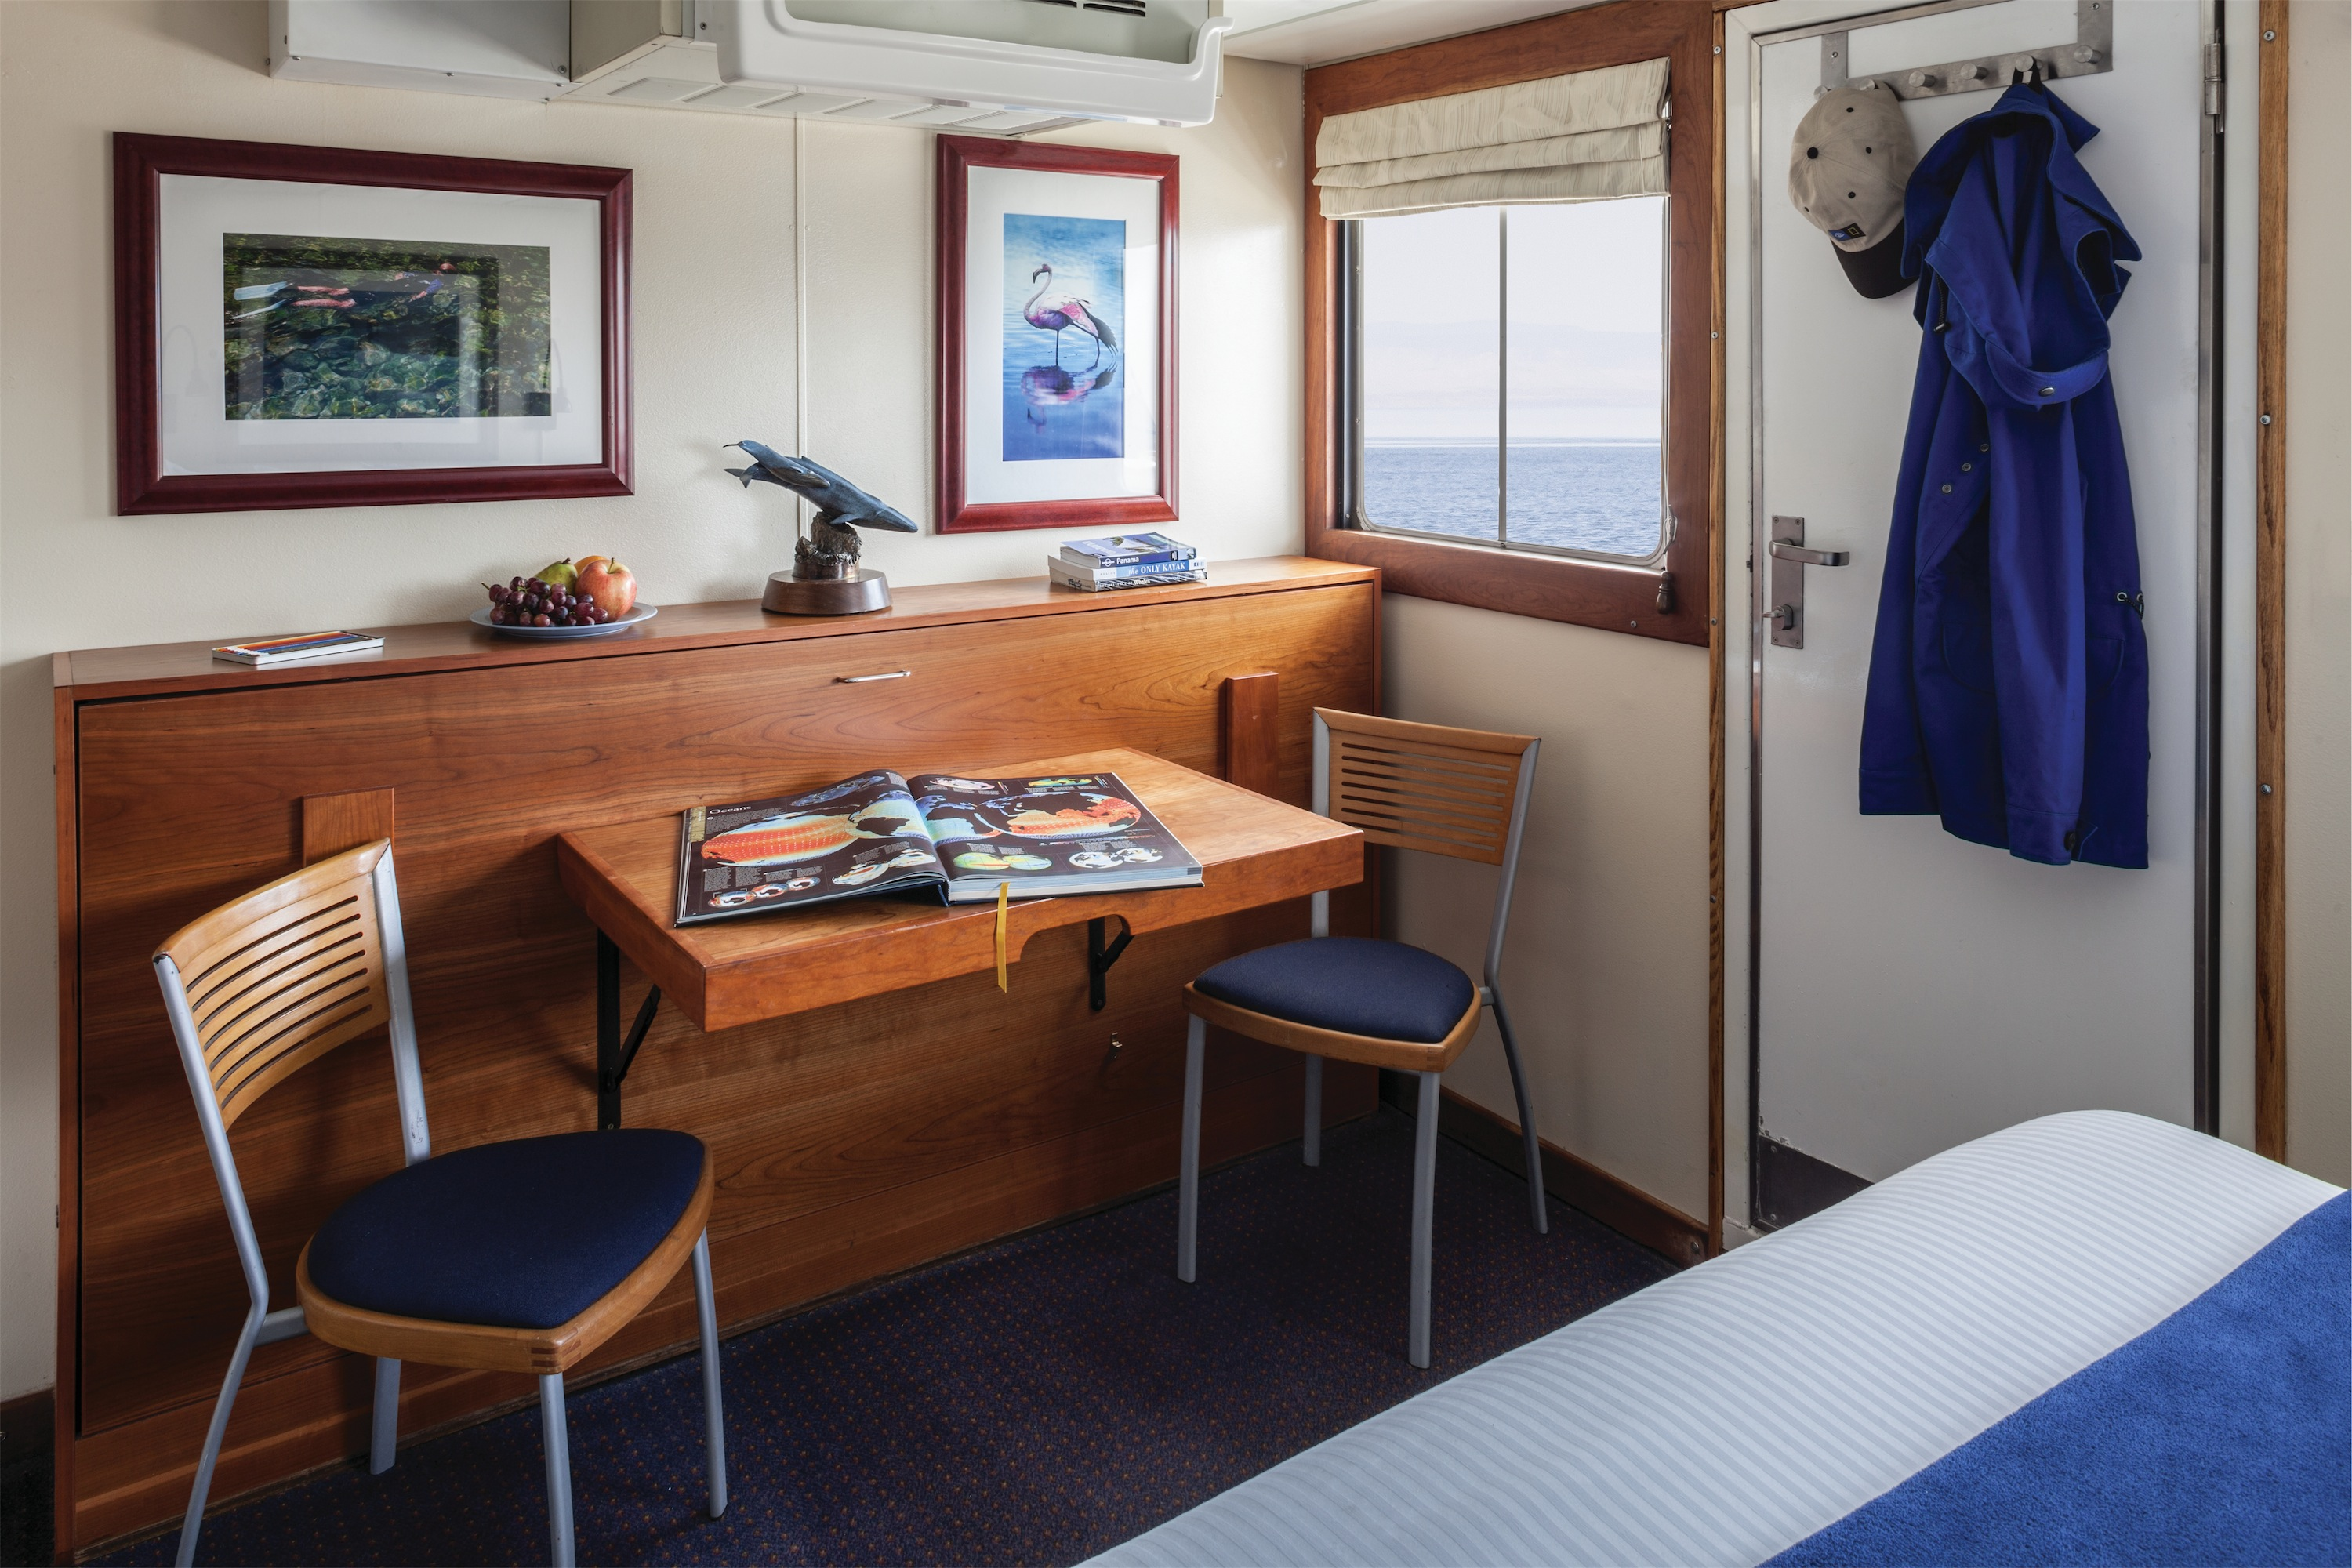 Lindblad Expeditions National Geographic Sea Bird & National Geographic Sea Lion Accommodation Category 3 Desk.jpg